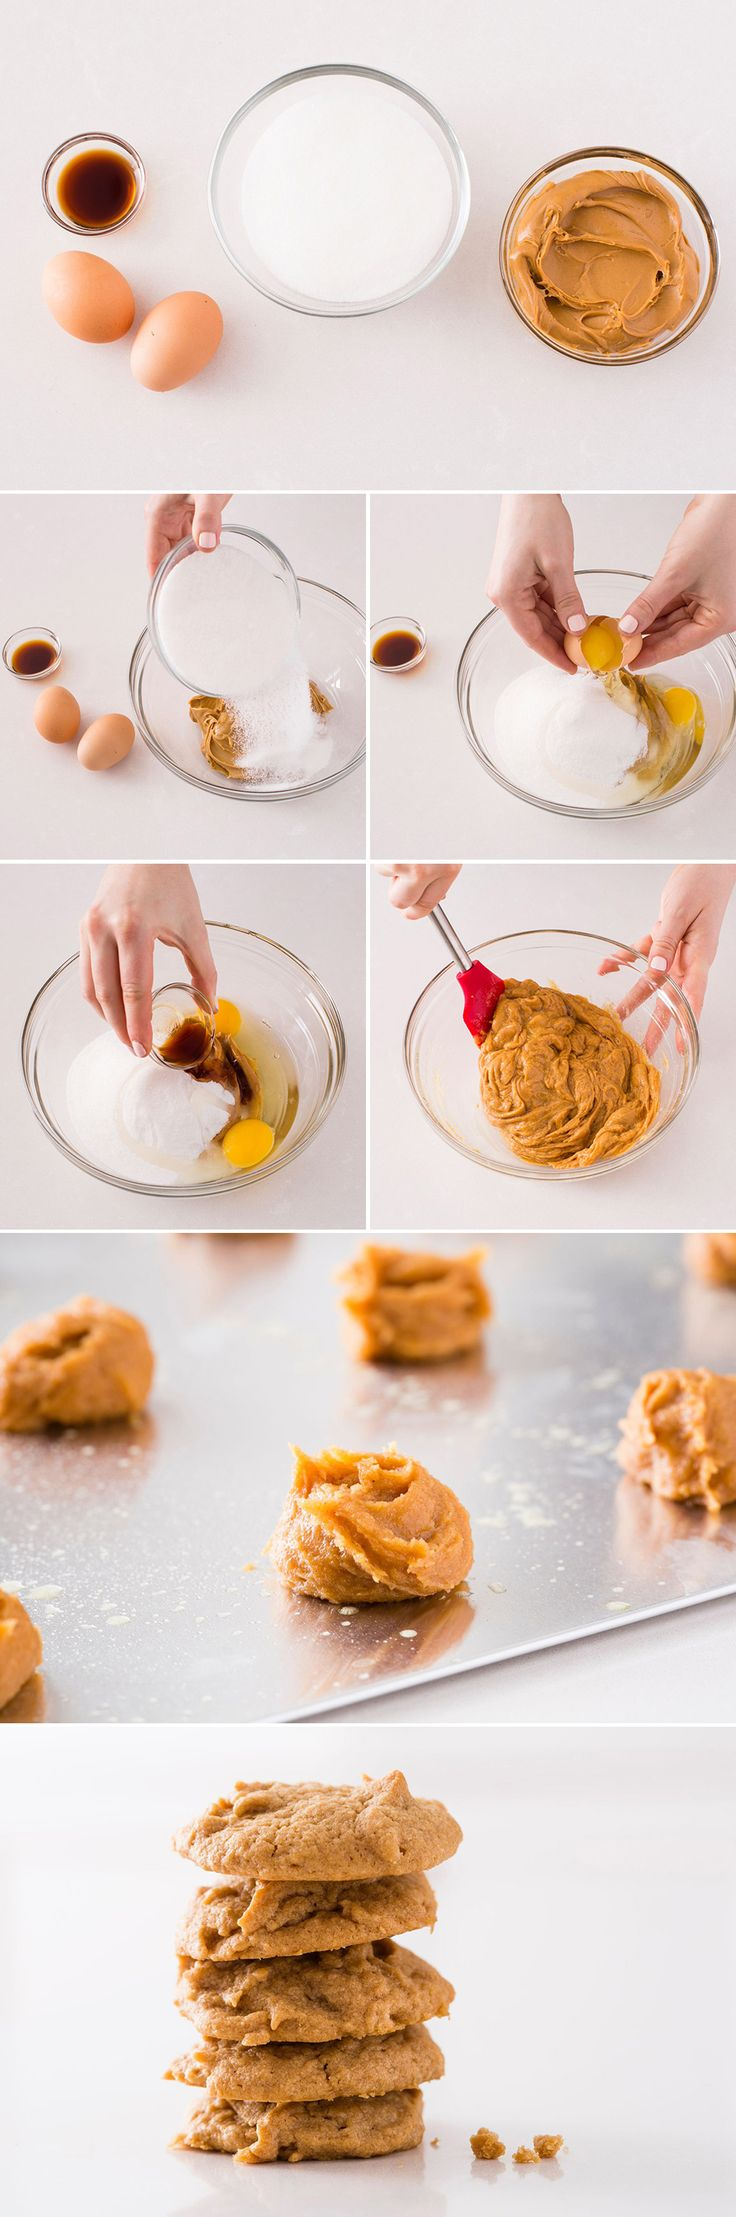 Use just four ingredients to make delicious Peanut Butter Cookies.